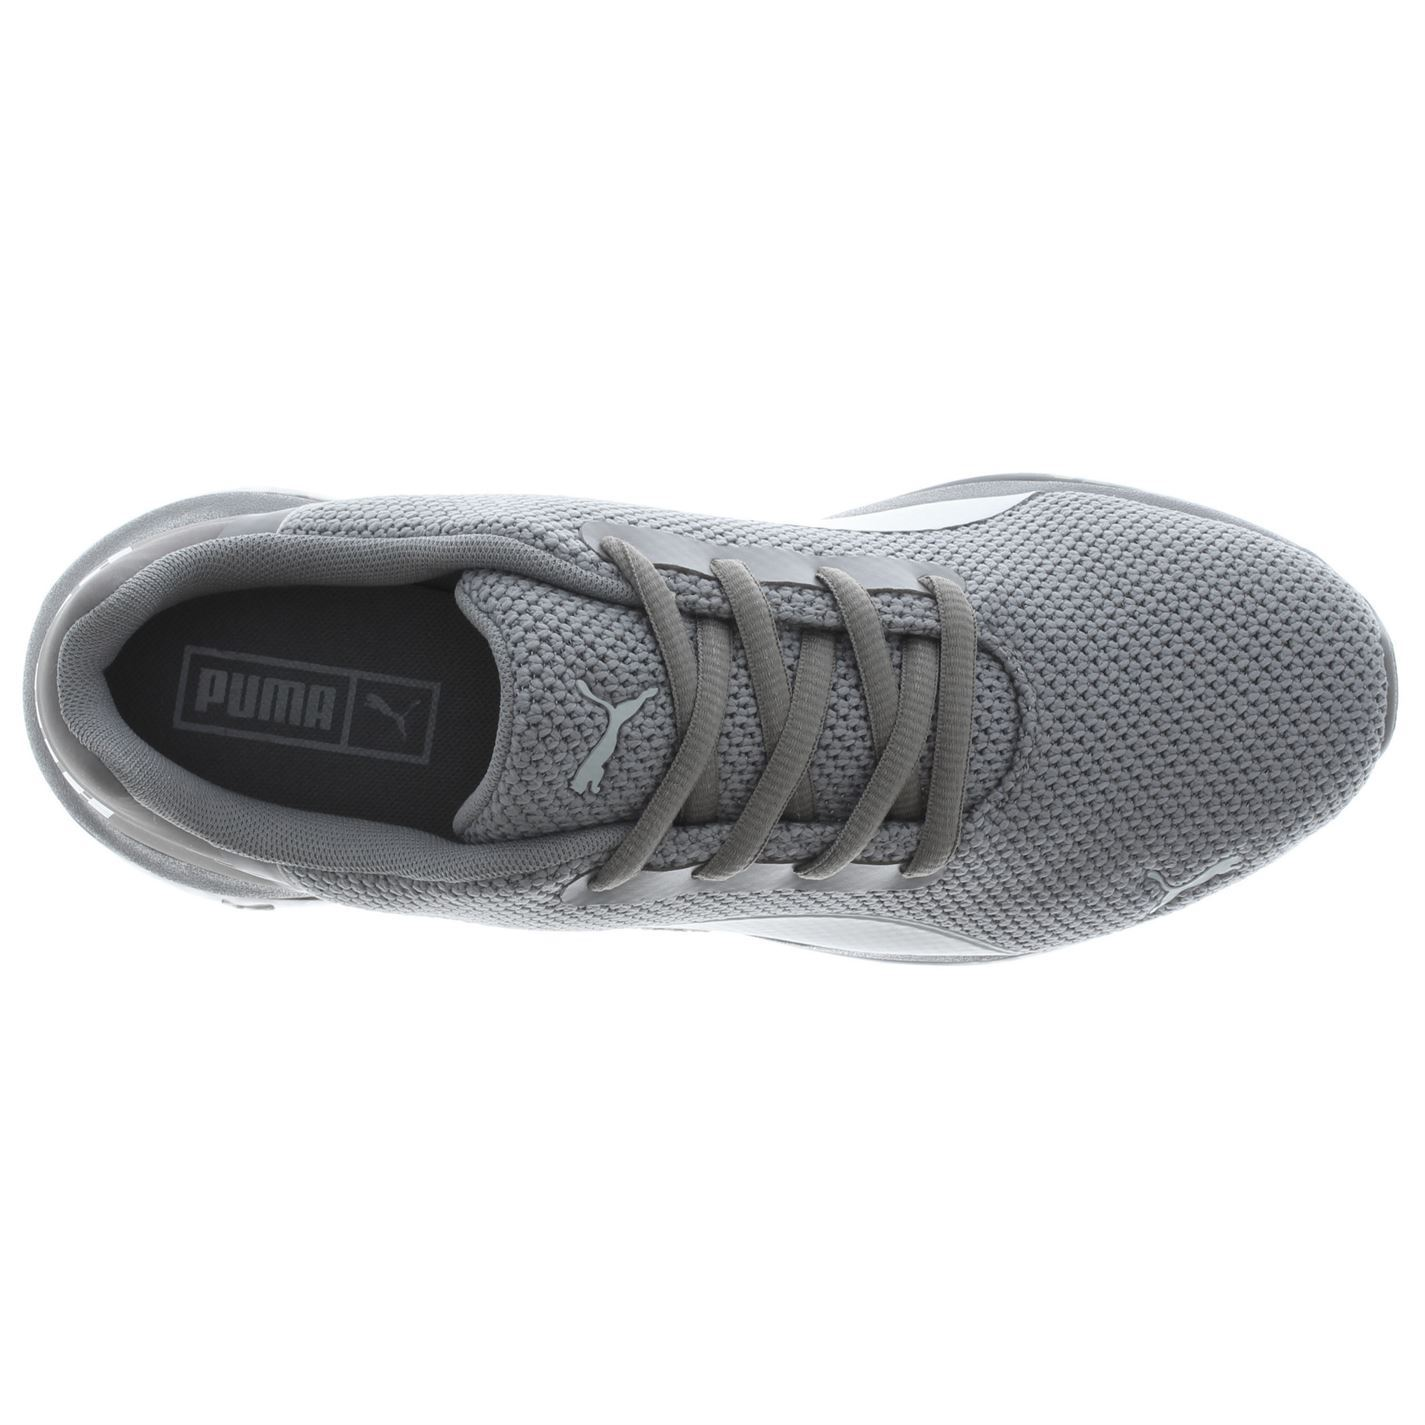 15c84a97d46 ... Puma Cell Ultimate Trainers Mens Grey Sports Shoes Sneakers